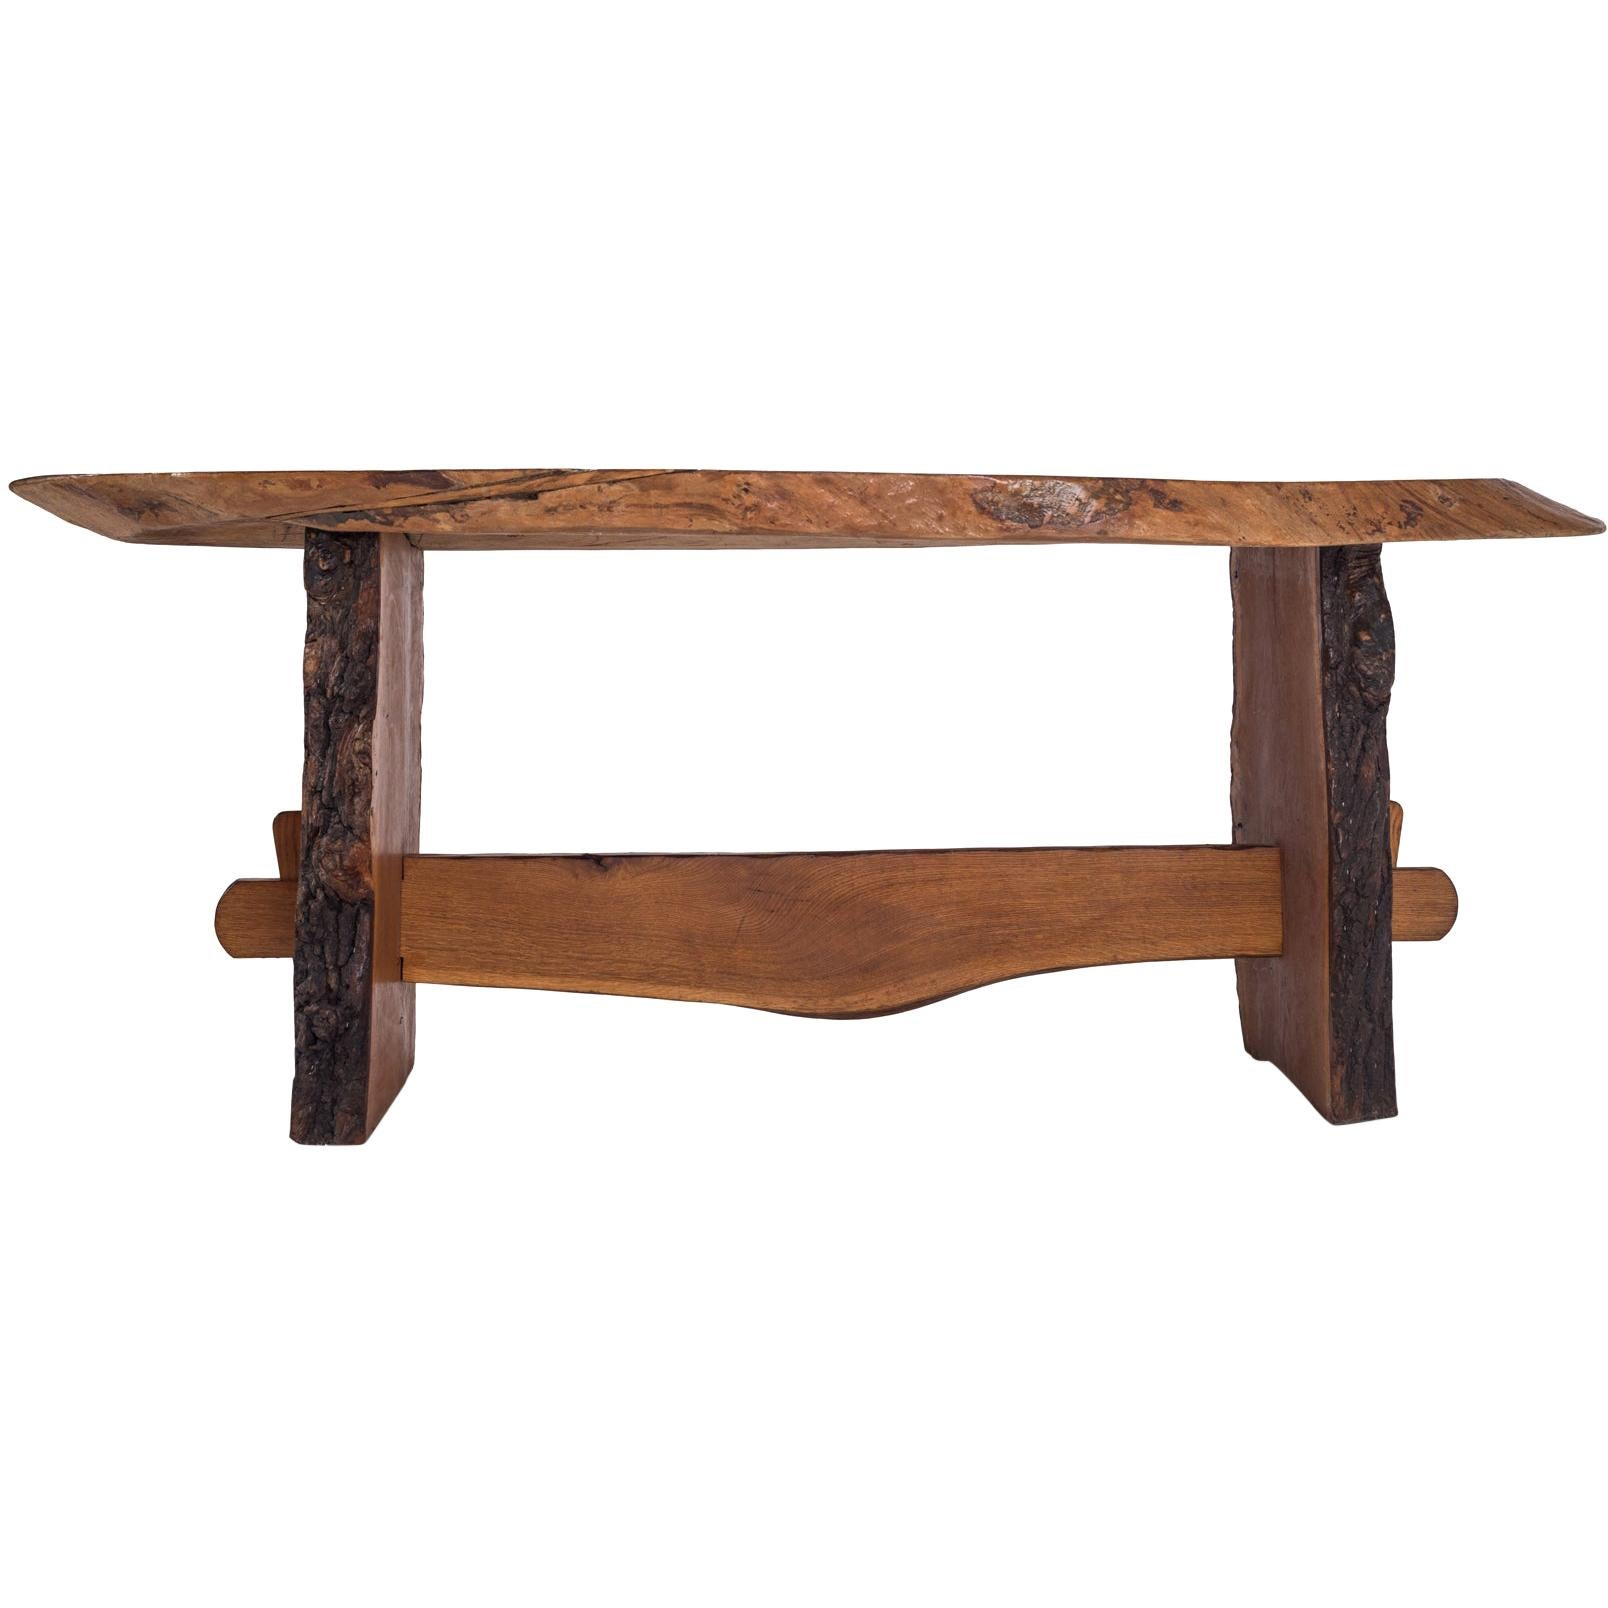 Rustic Modern Dining Table in Solid Wood